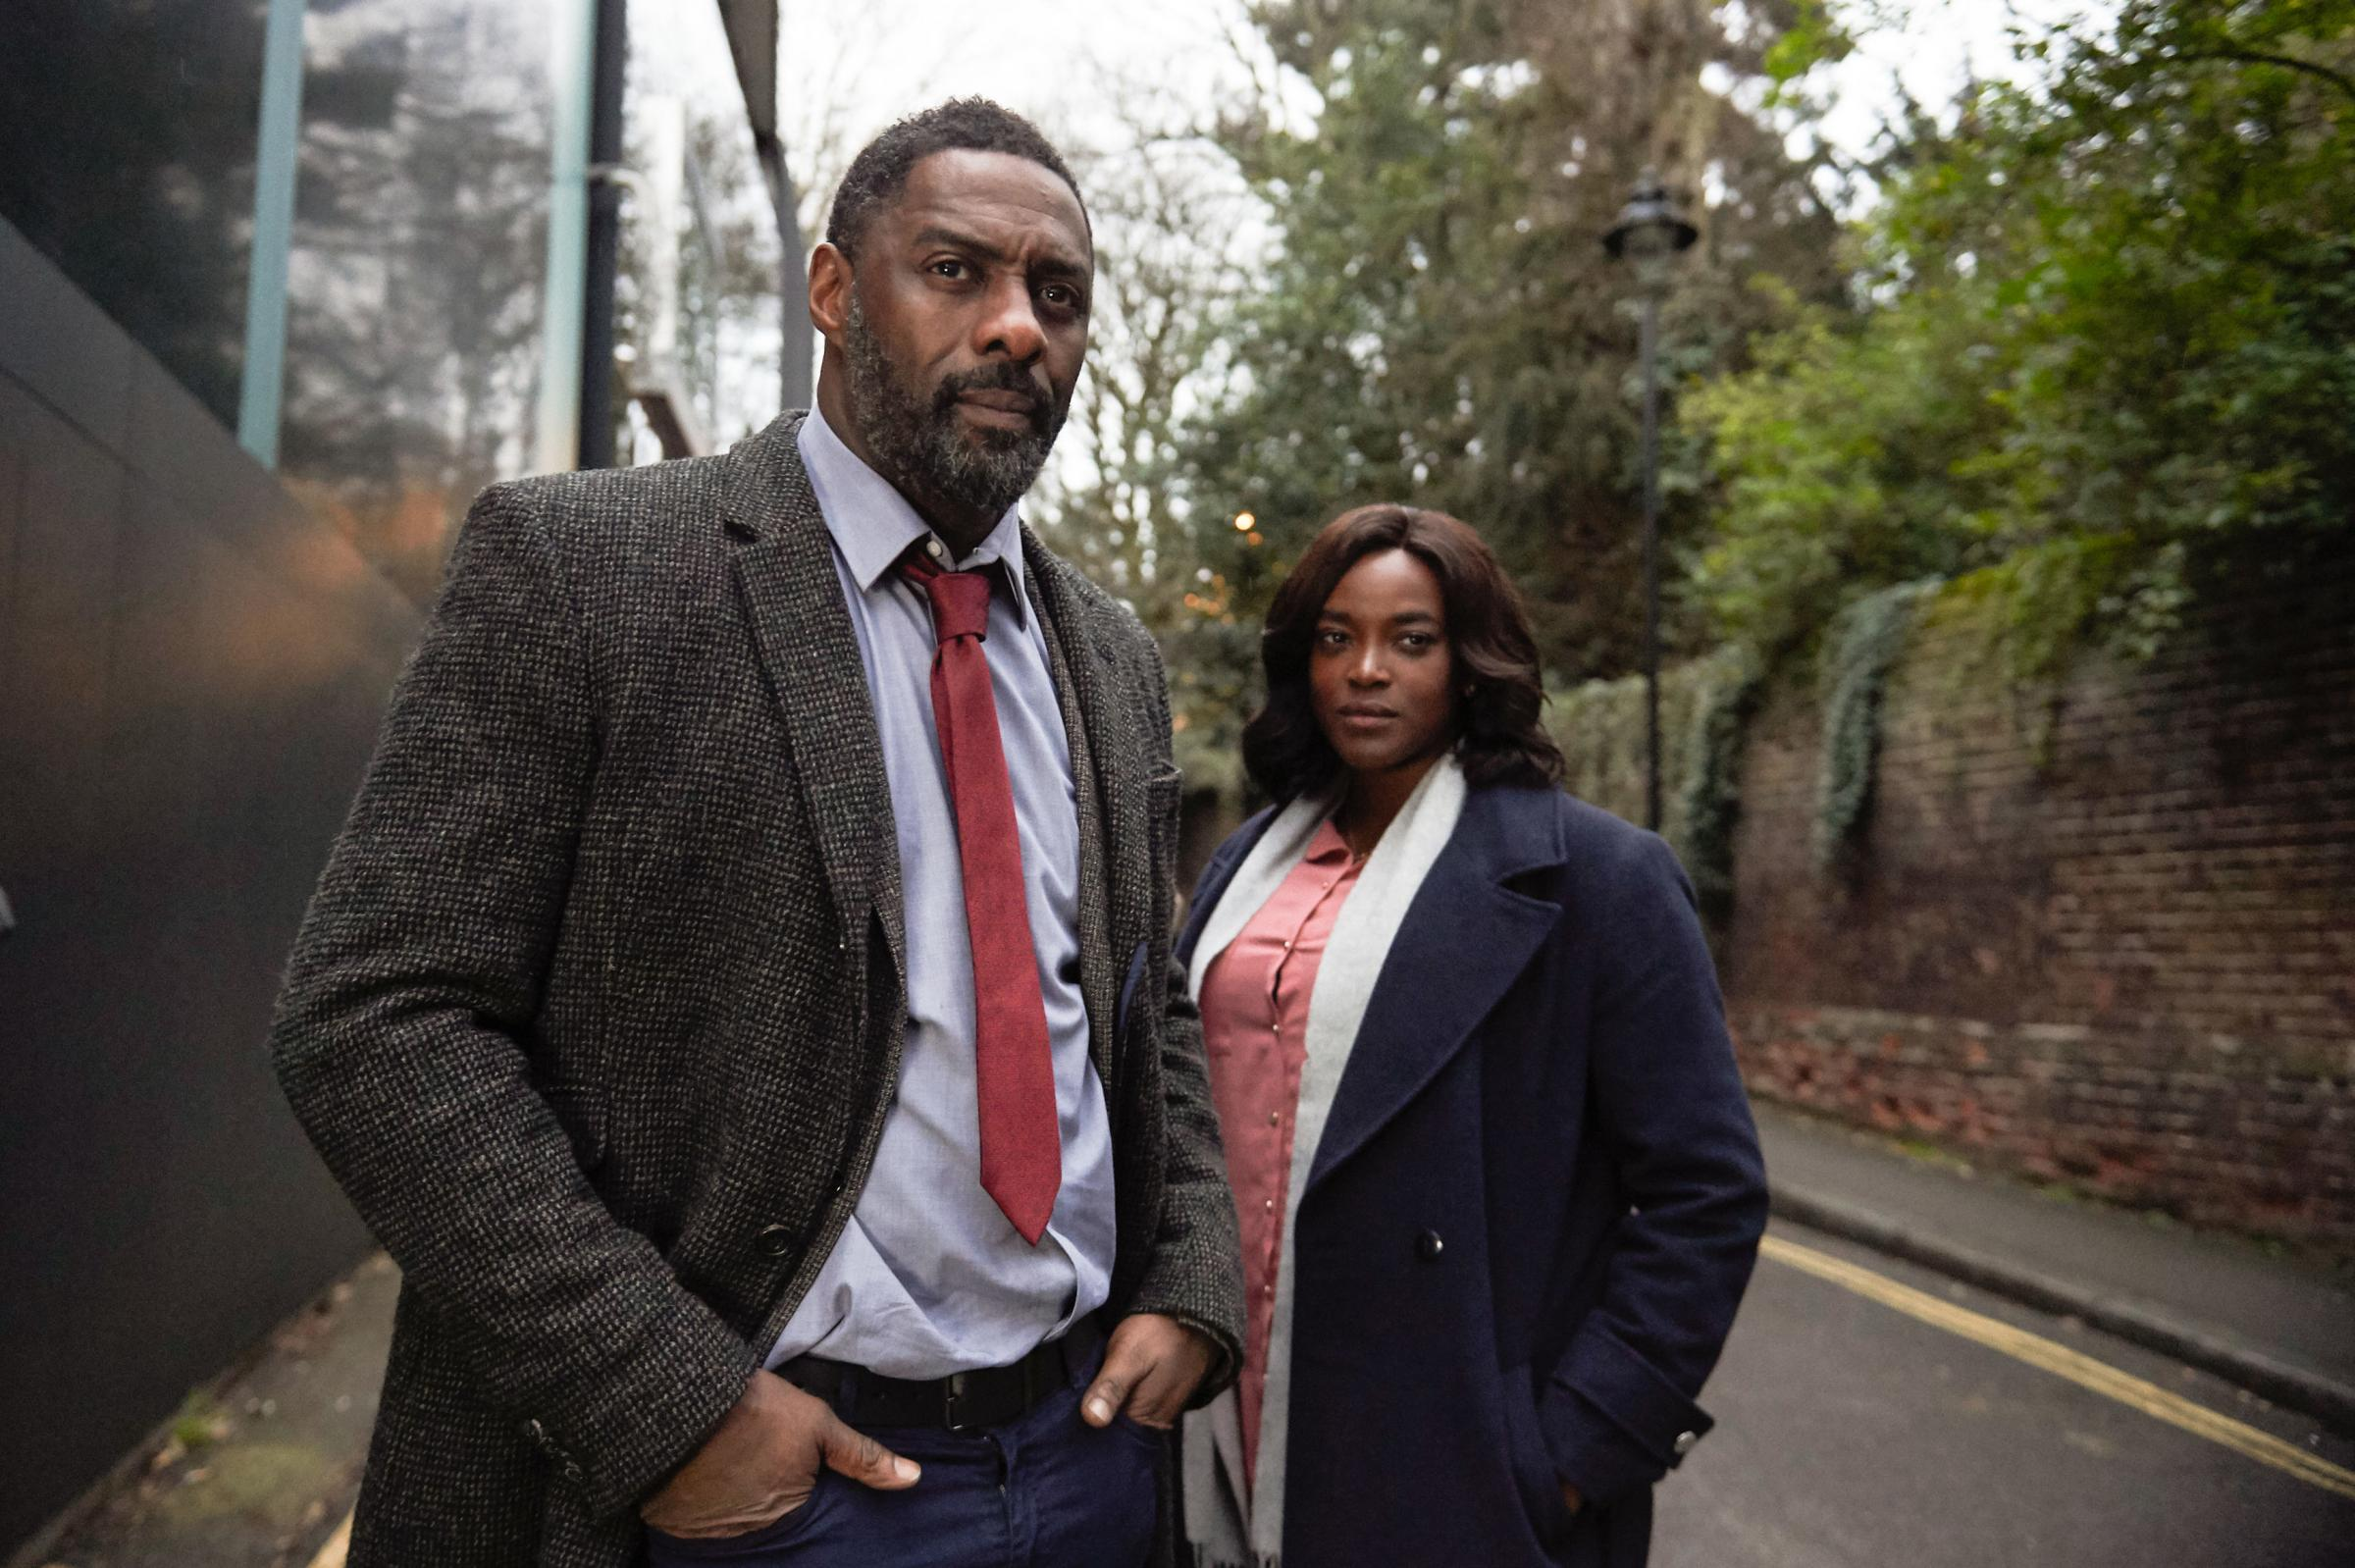 Idris Elba as DCI John Luther and Wunmi Mosaku as DS Halliday in the BBC drama Luther. Photograph: PA Photo/BBC/Des Willie